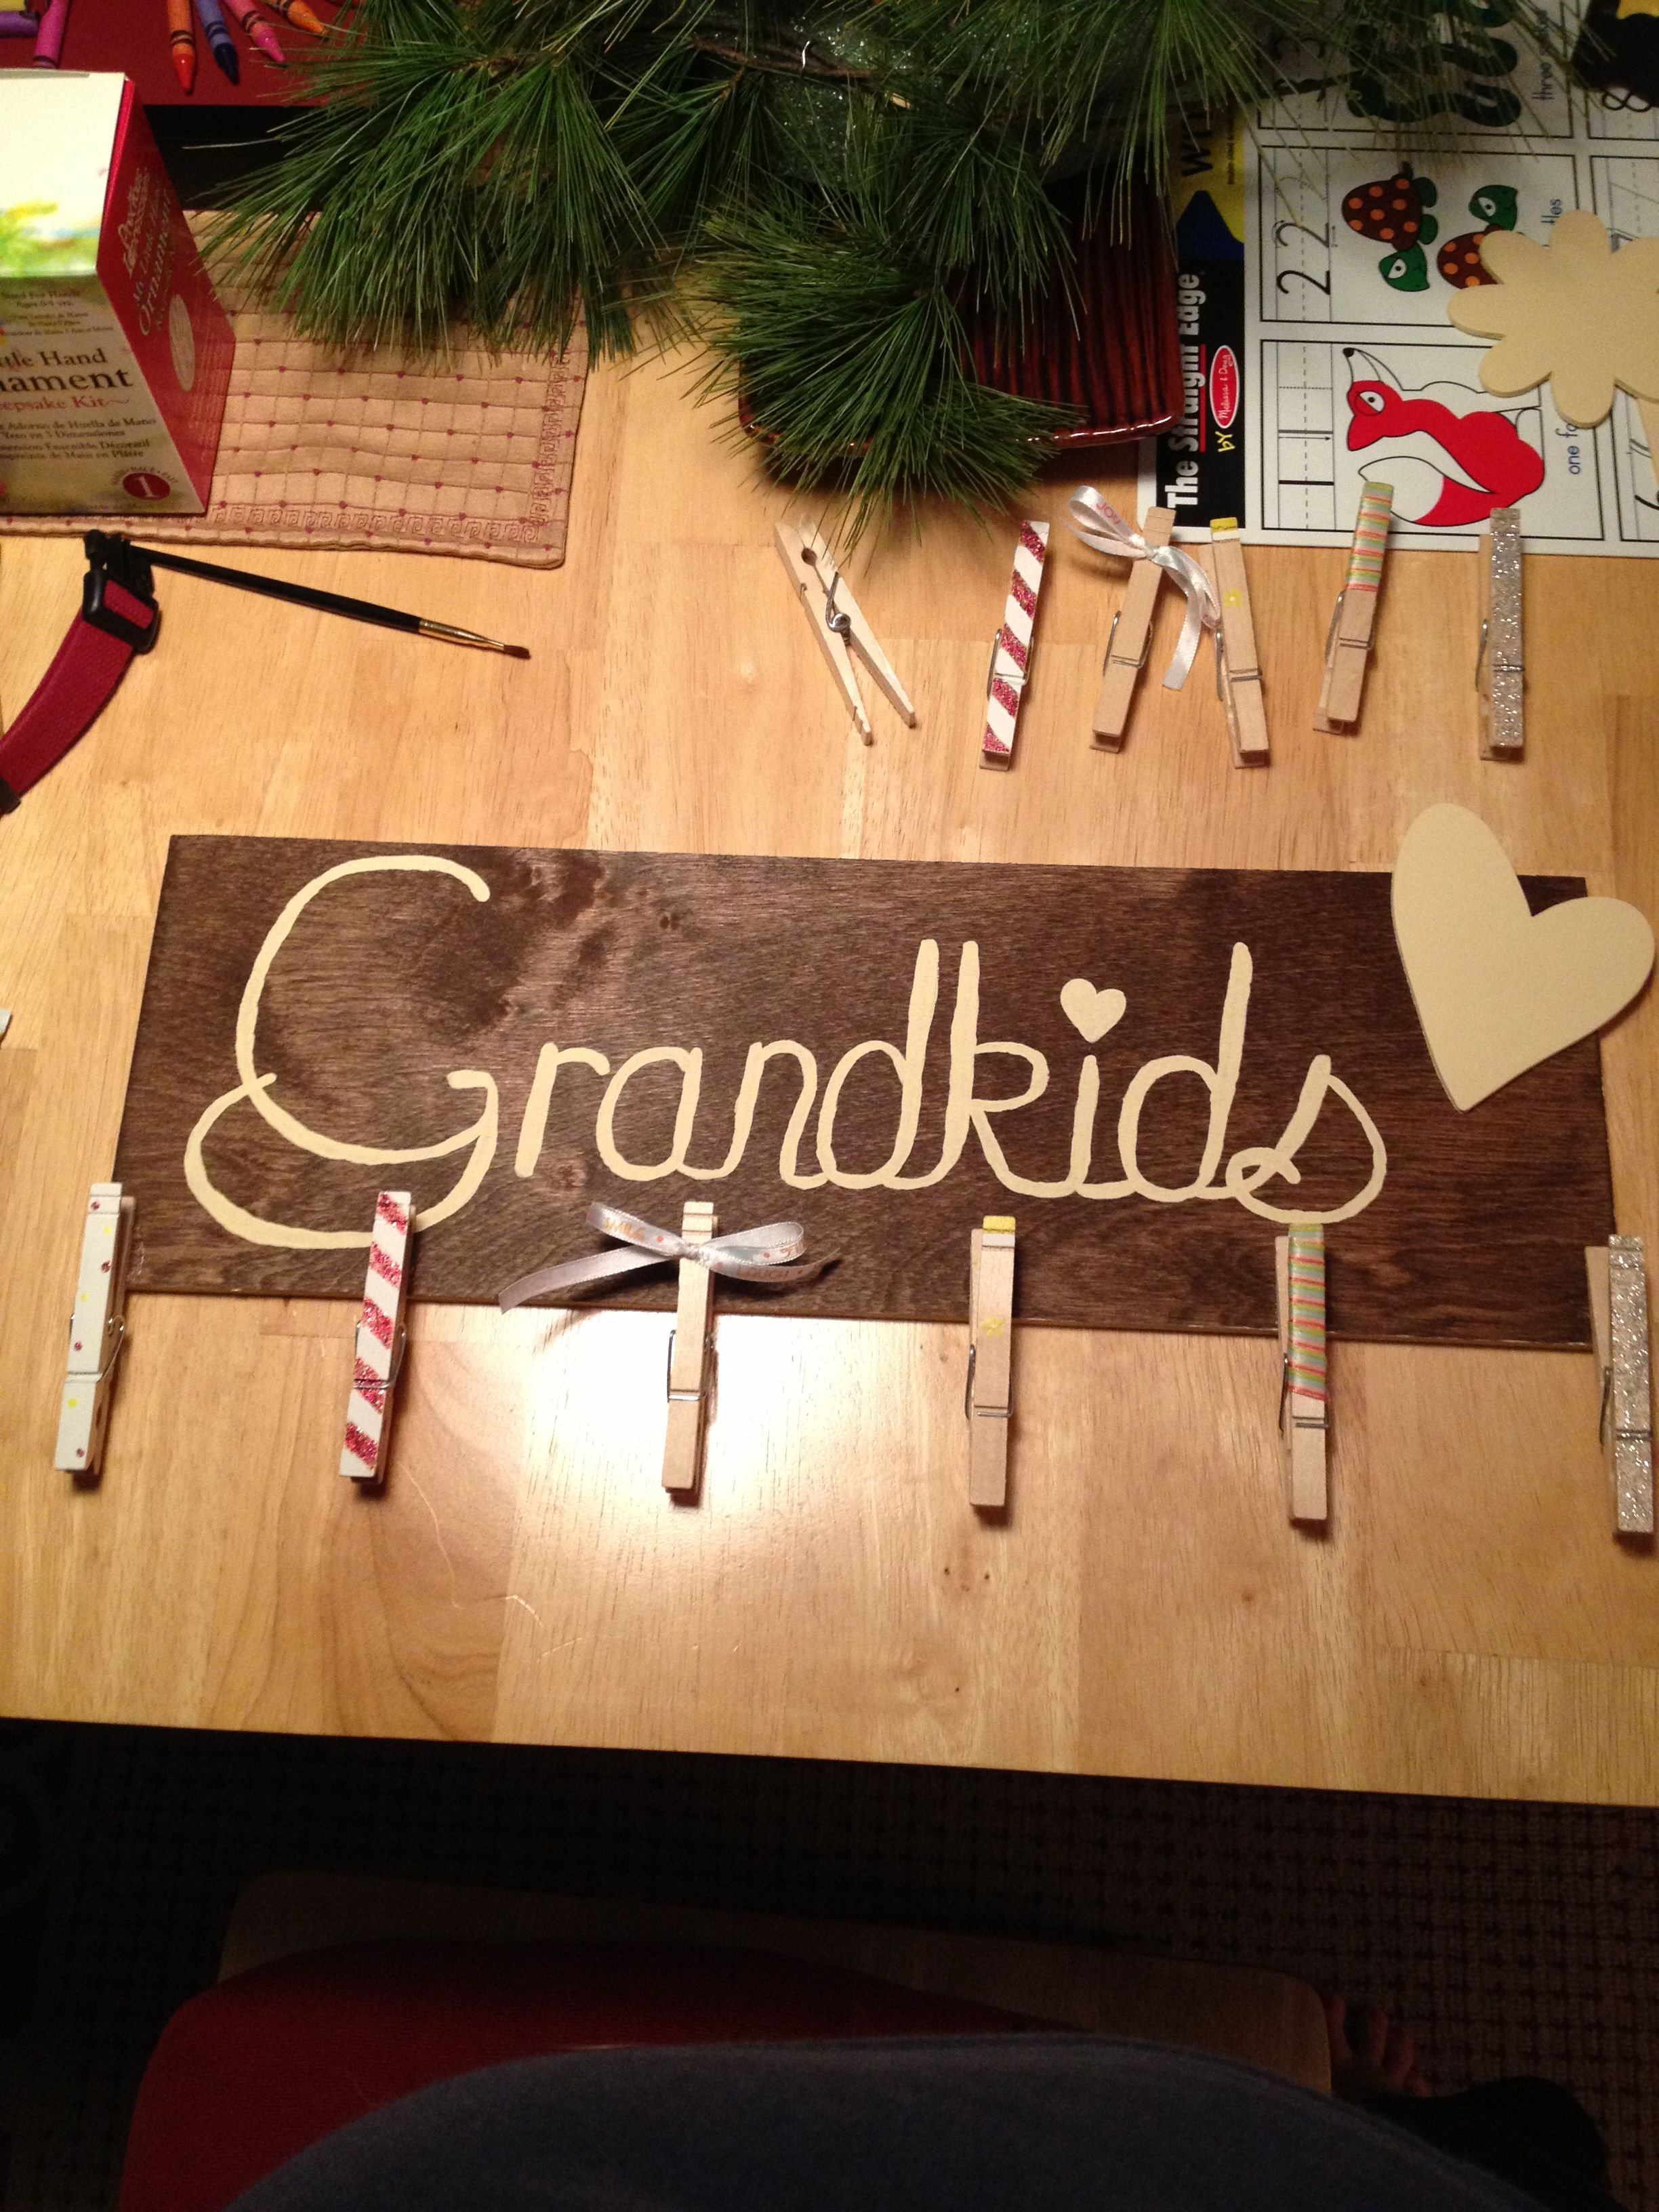 Christmas gift for the Grandparents | My creations | Pinterest ...